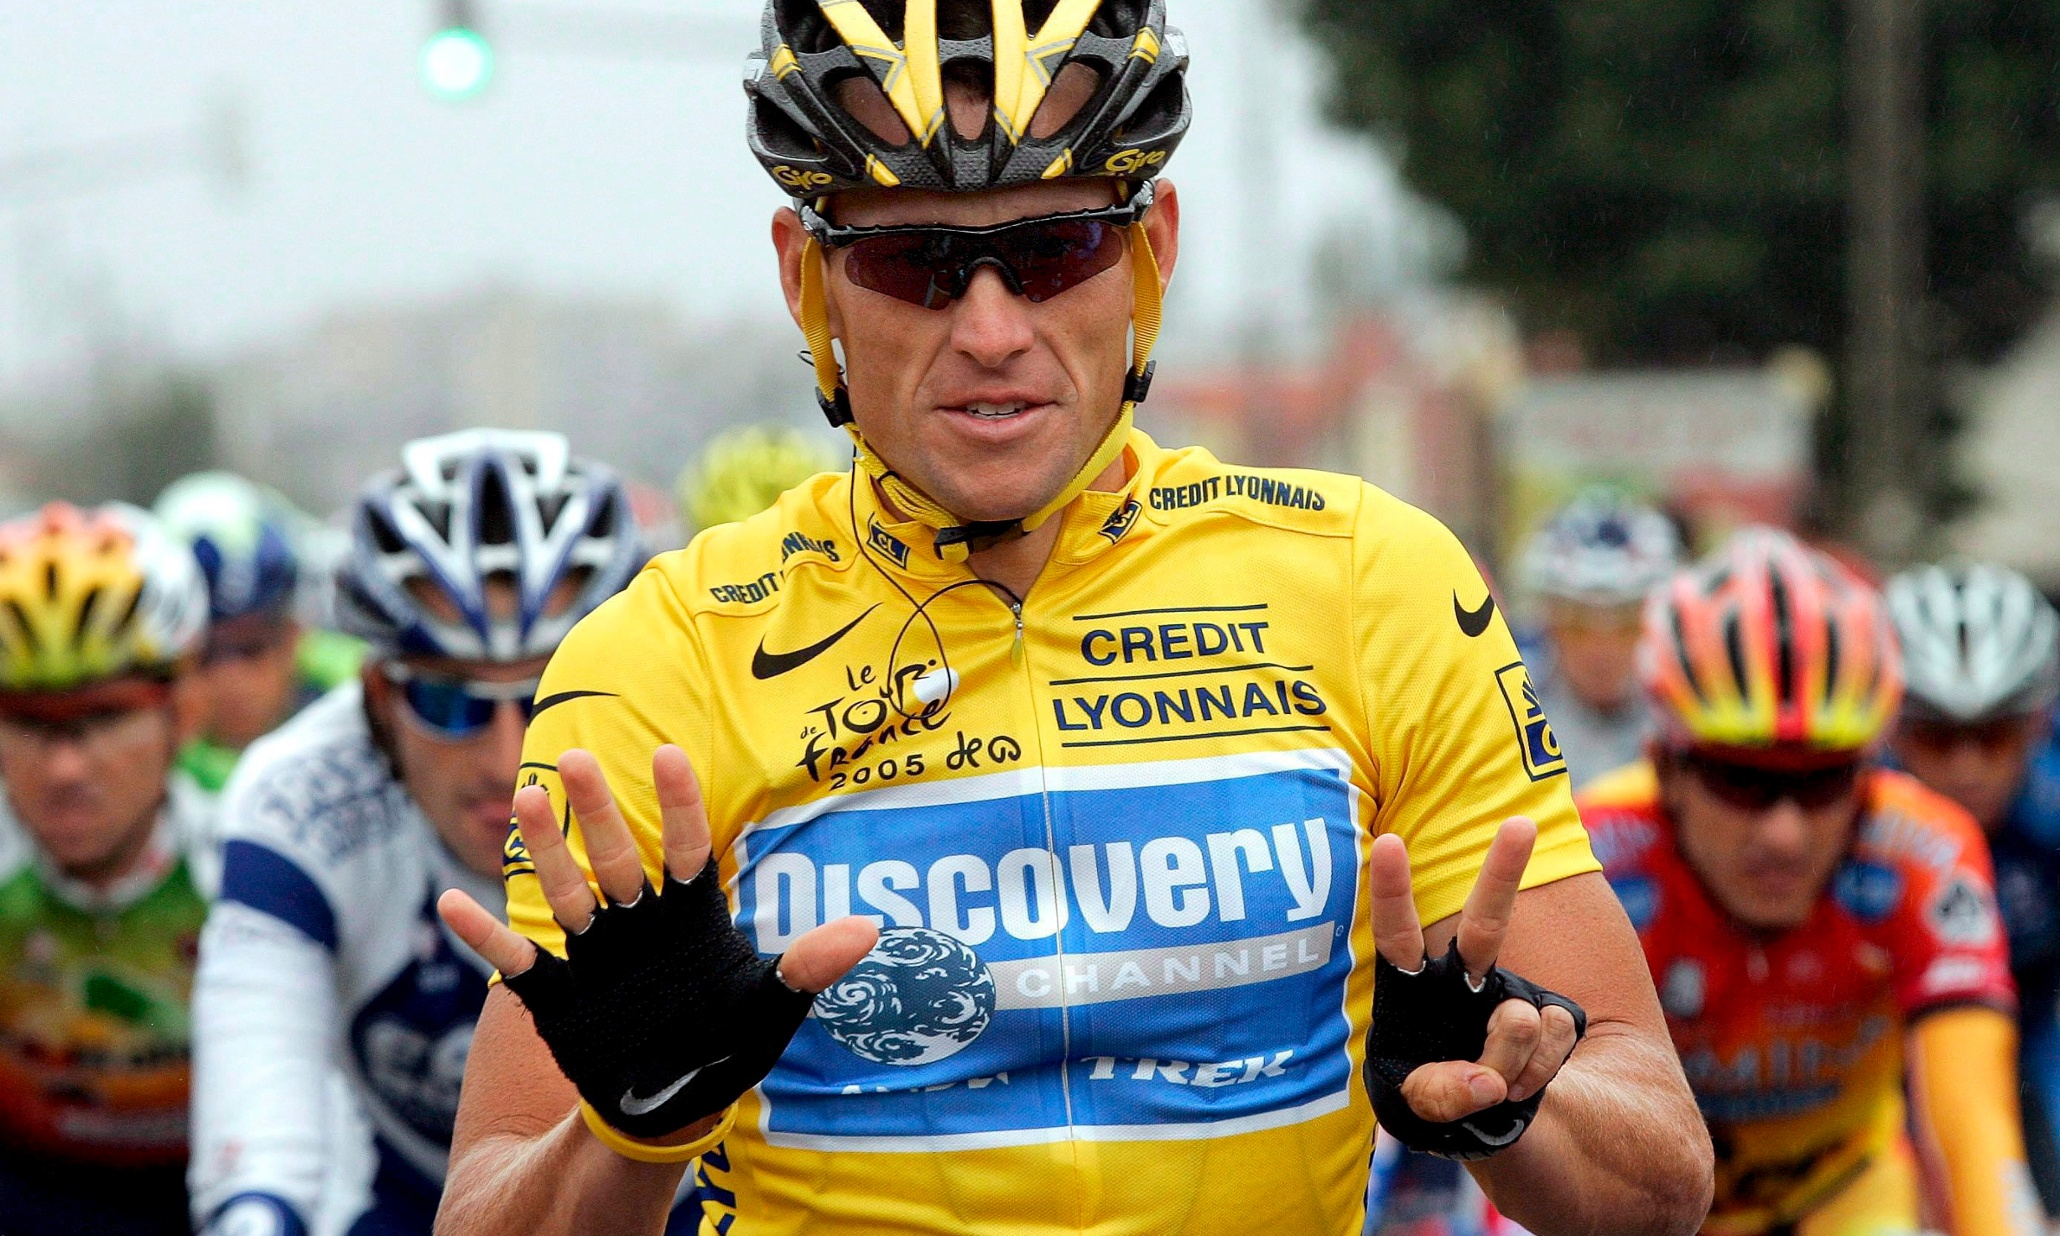 Government Subpoenas Lance Armstrong's Medical Record in Search of Steroids and EPO Evidence